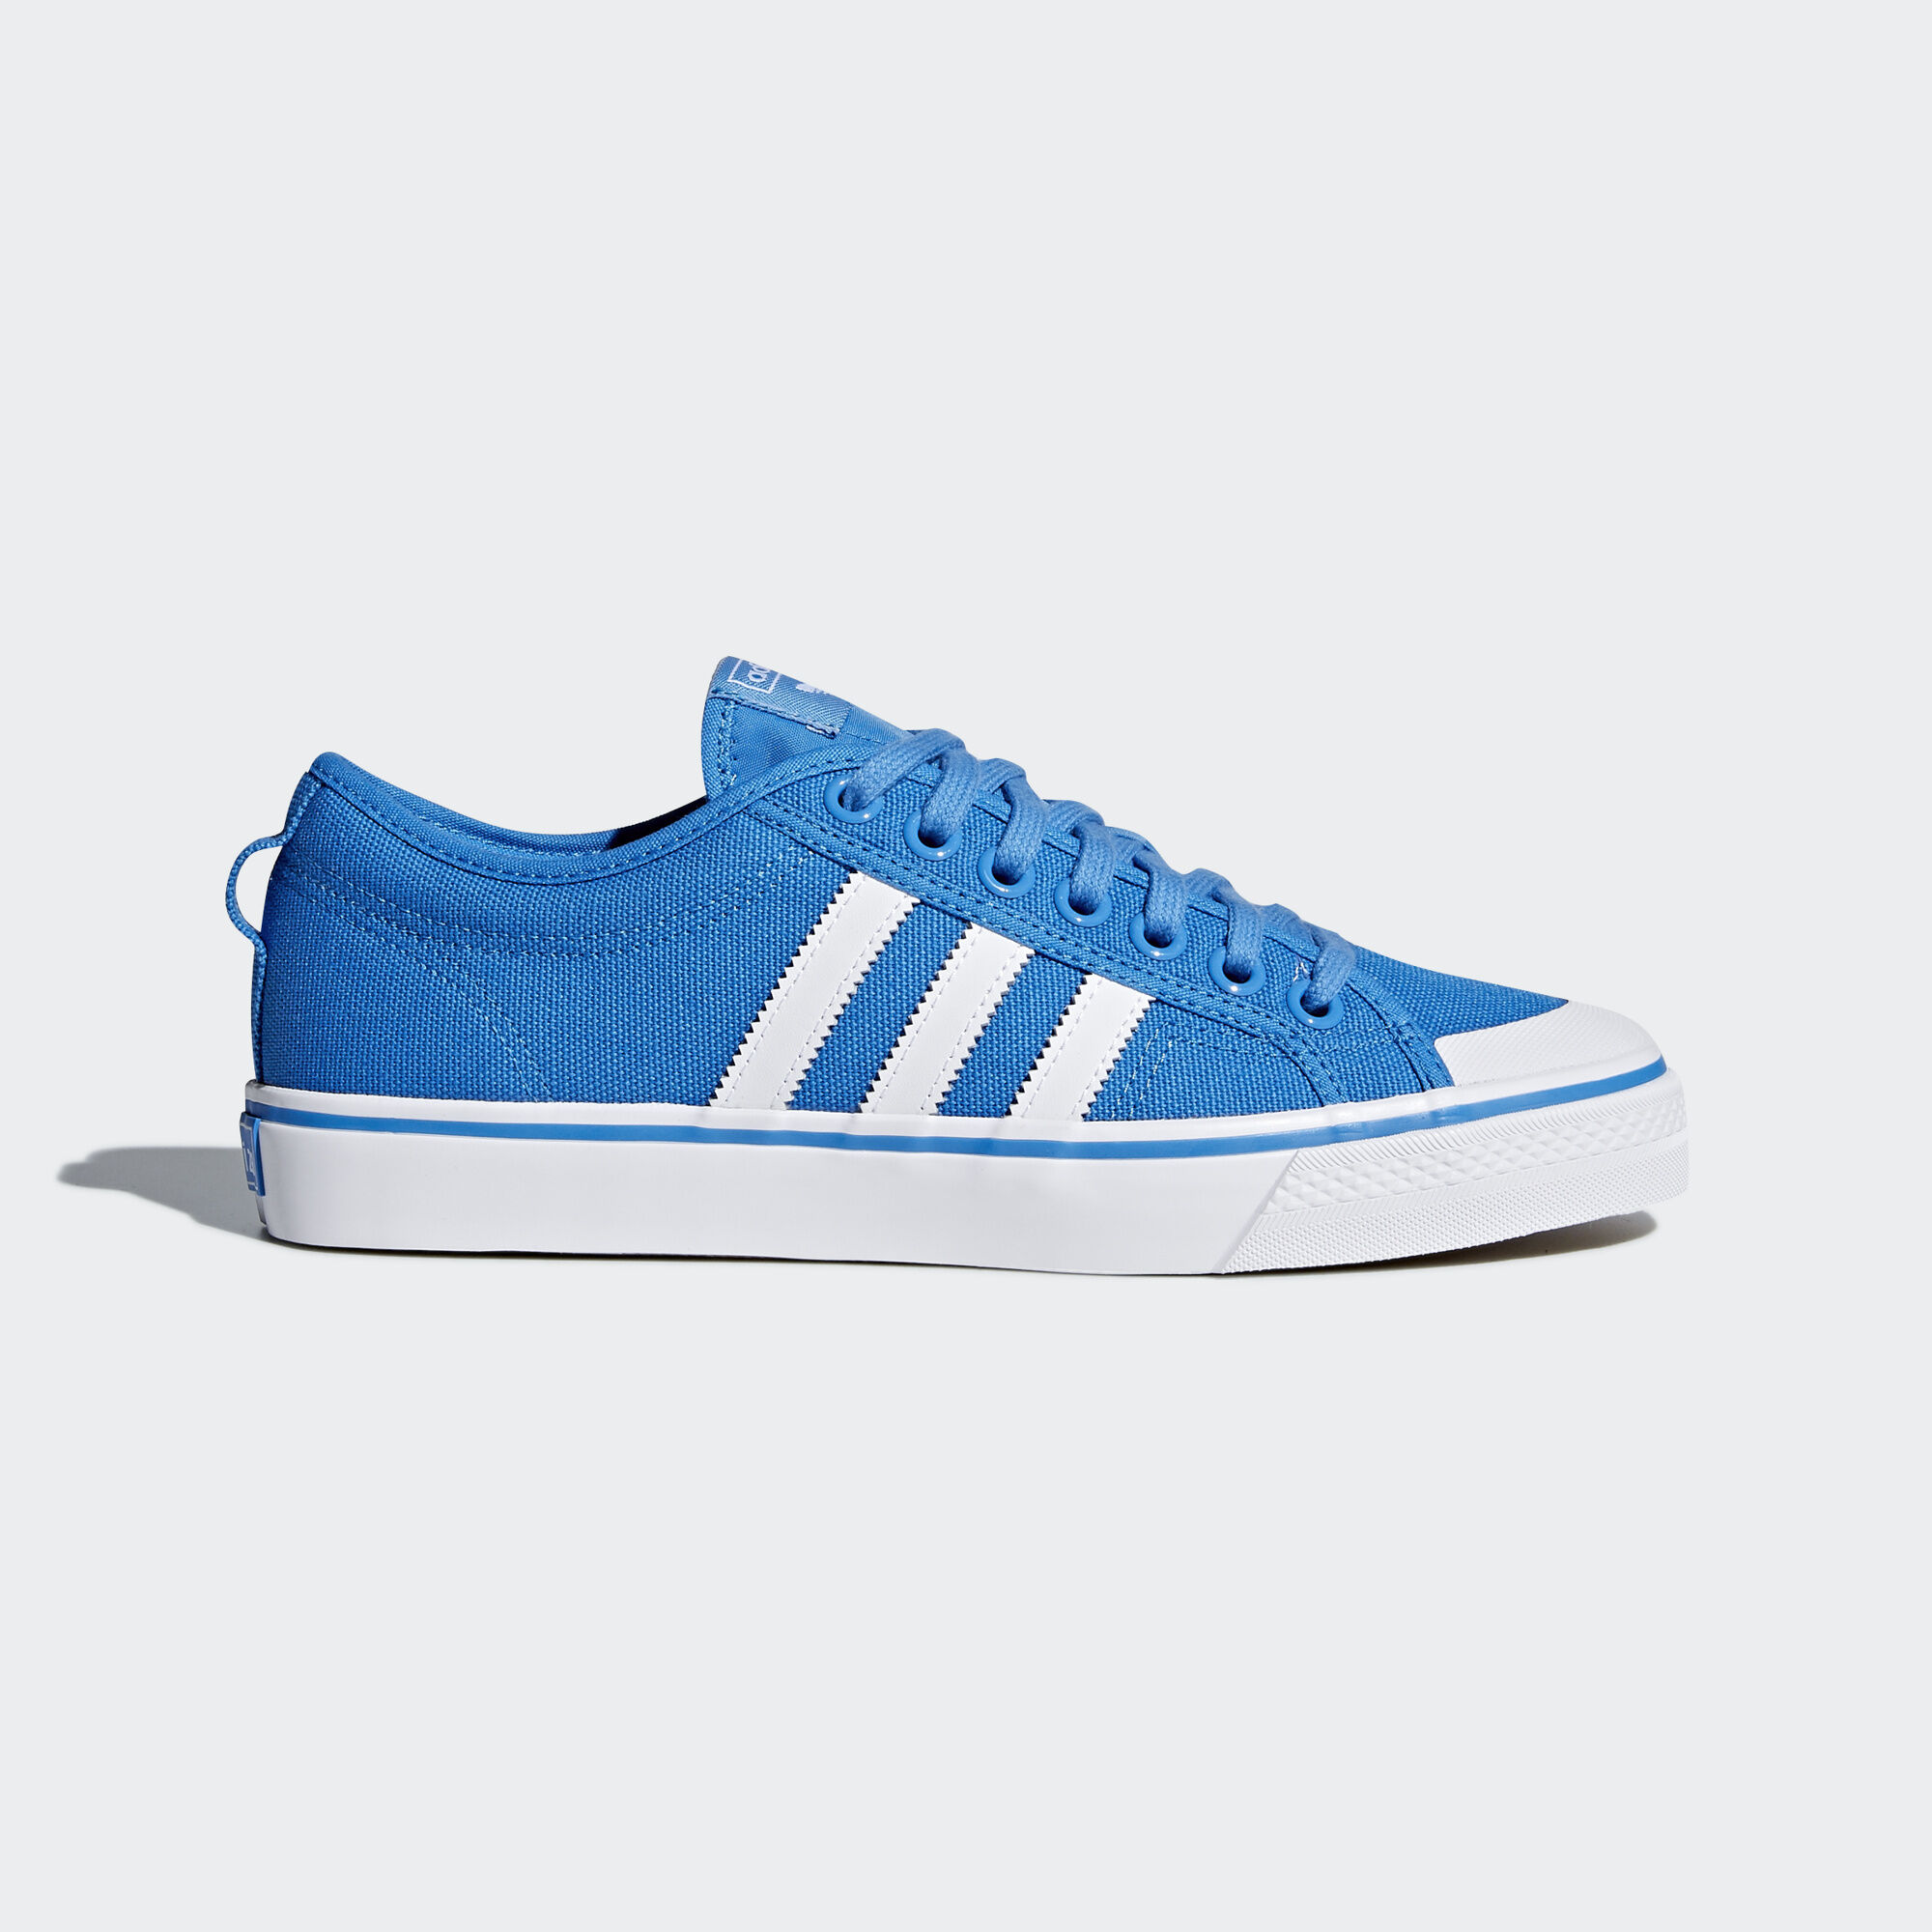 online store 84ccc 8427a adidas - Nizza Shoes Bright BlueFtwr WhiteFtwr White CQ2330